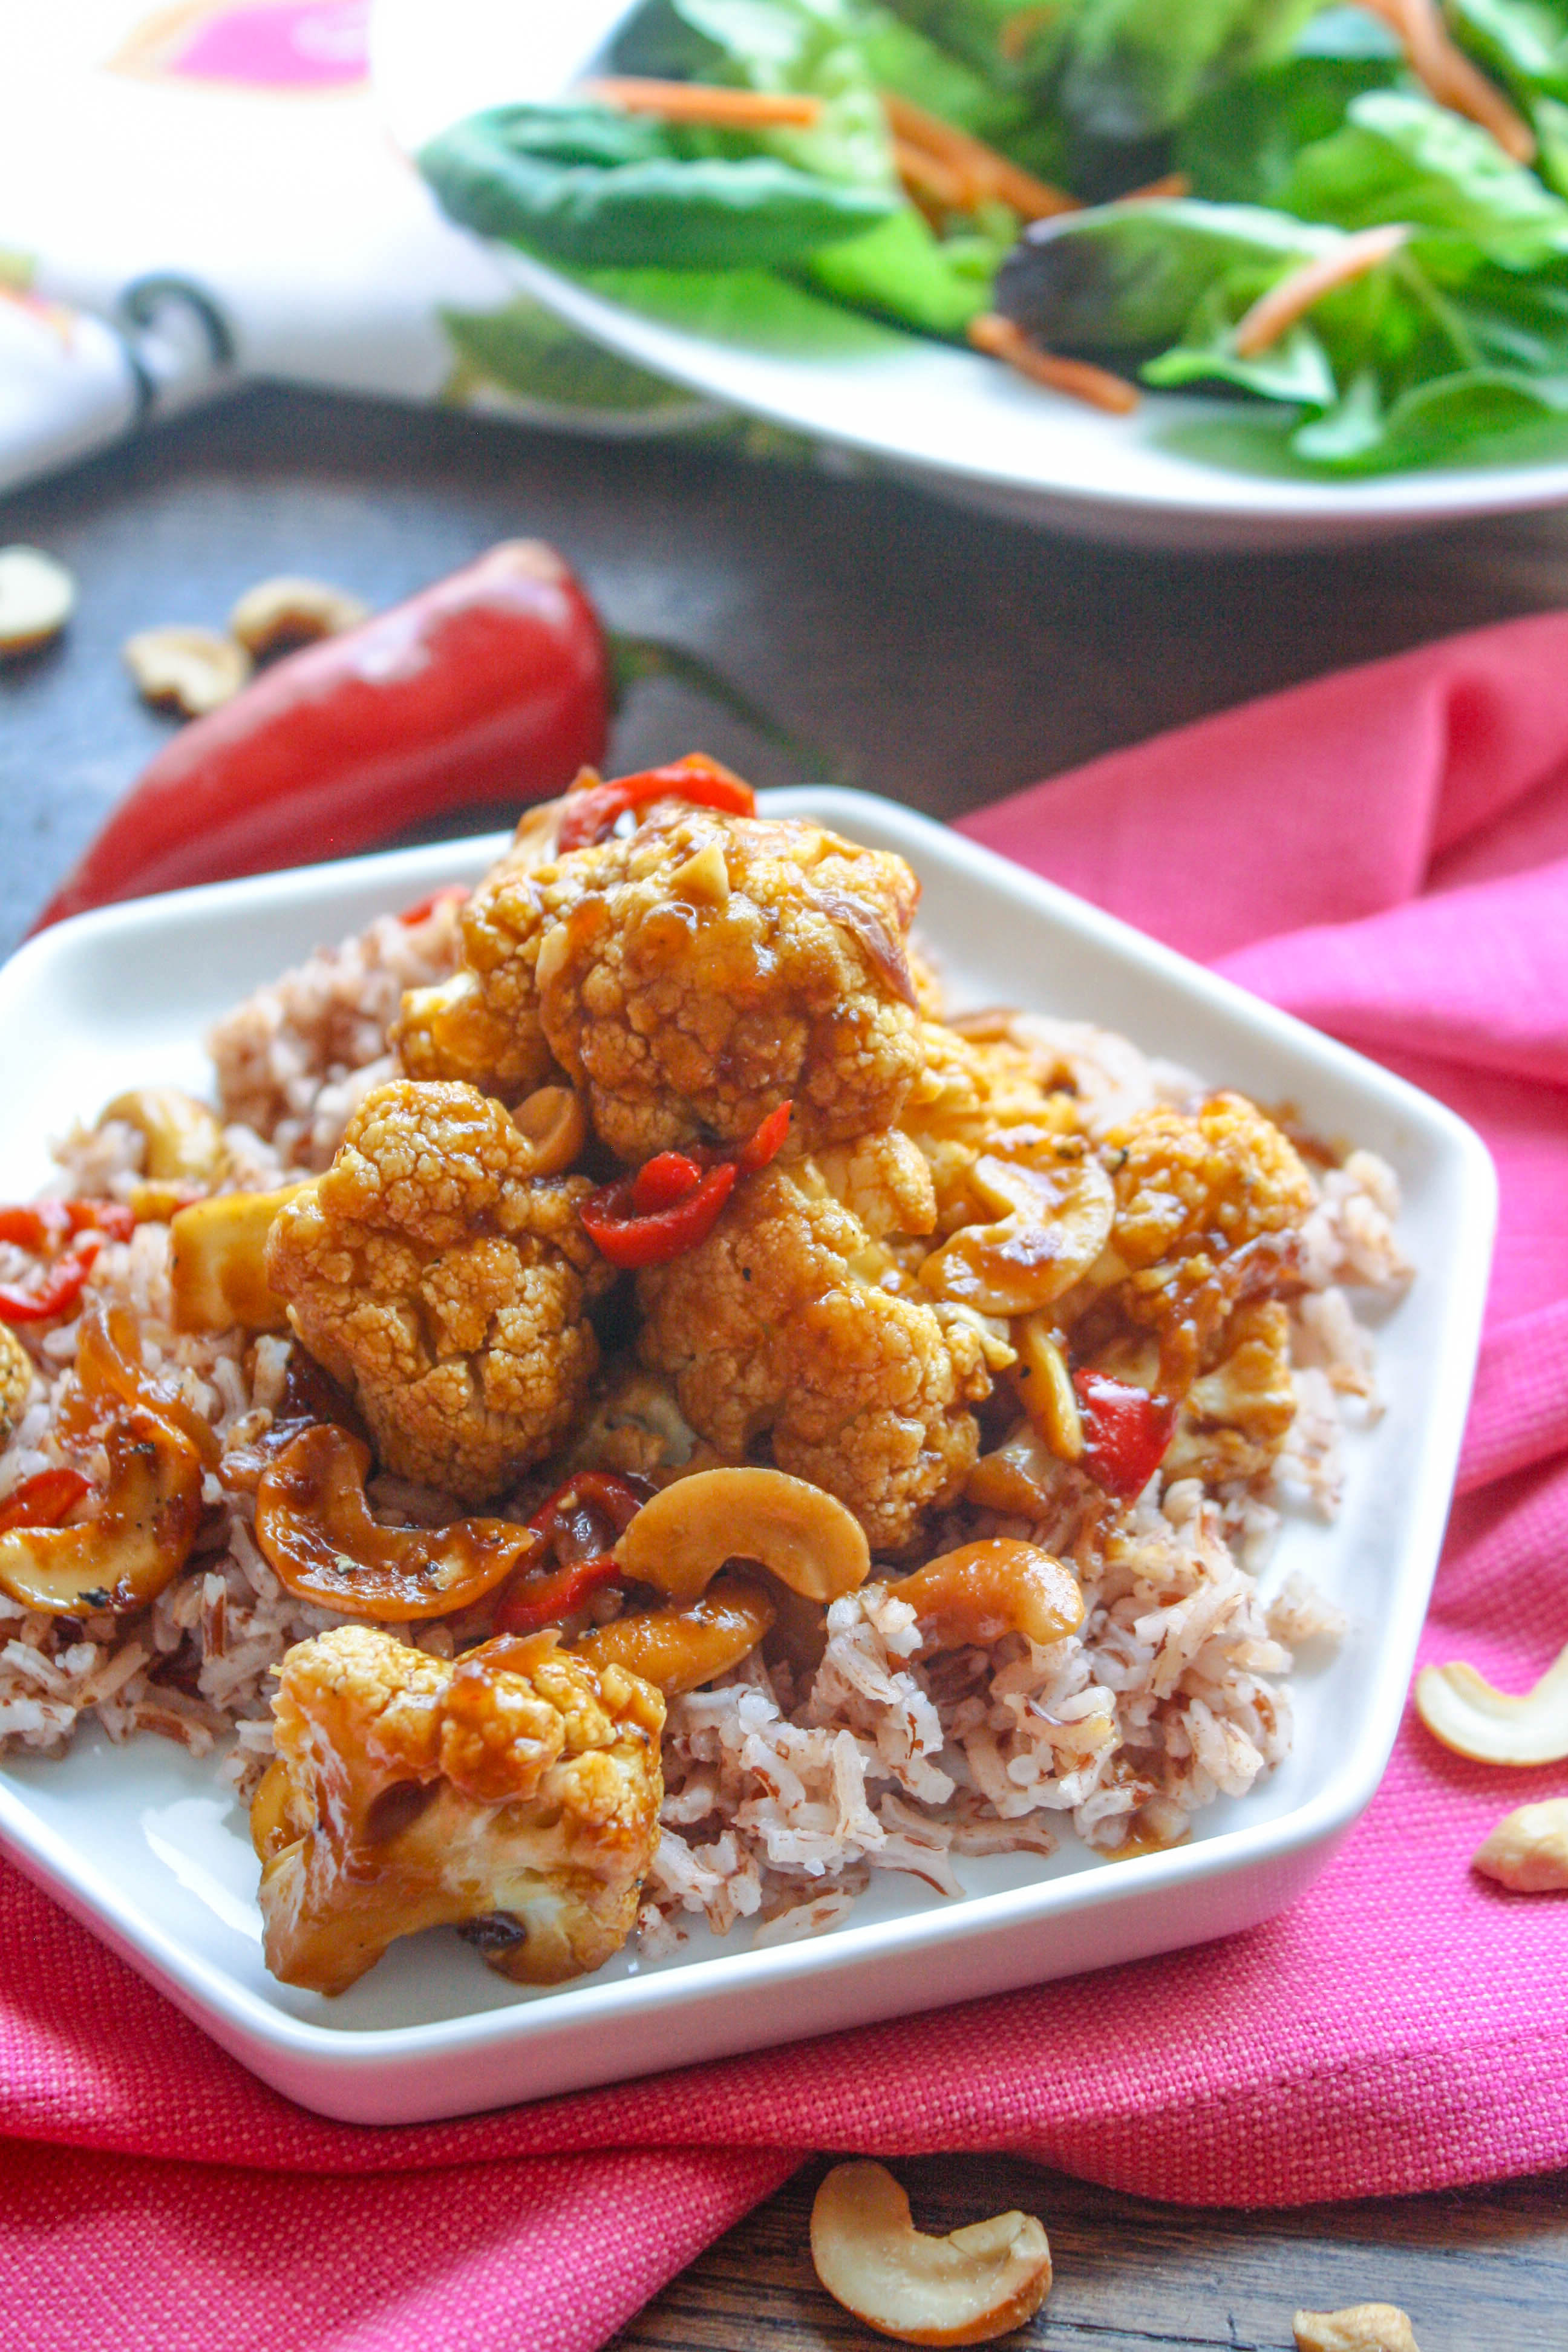 Kung Pao Cauliflower is a tasty, meatless dish. Serve it as an appetizer or as a main dish - you decide!